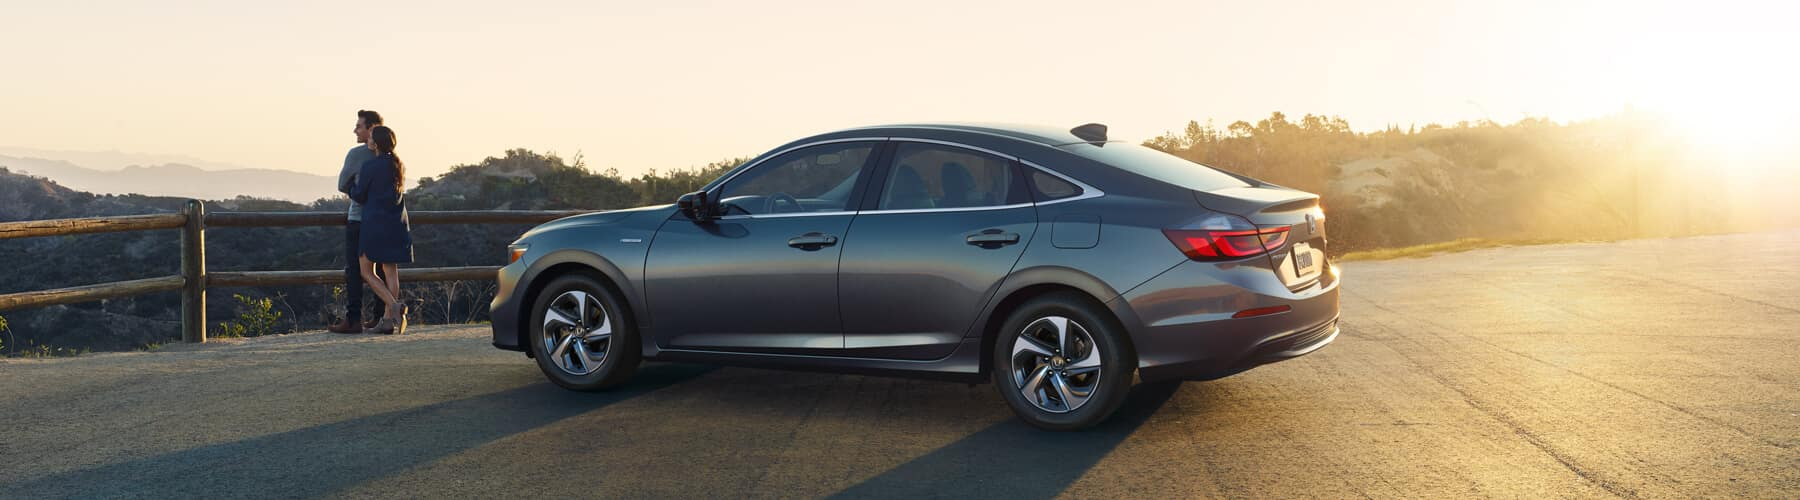 2021 Honda Insight Hybrid Slider